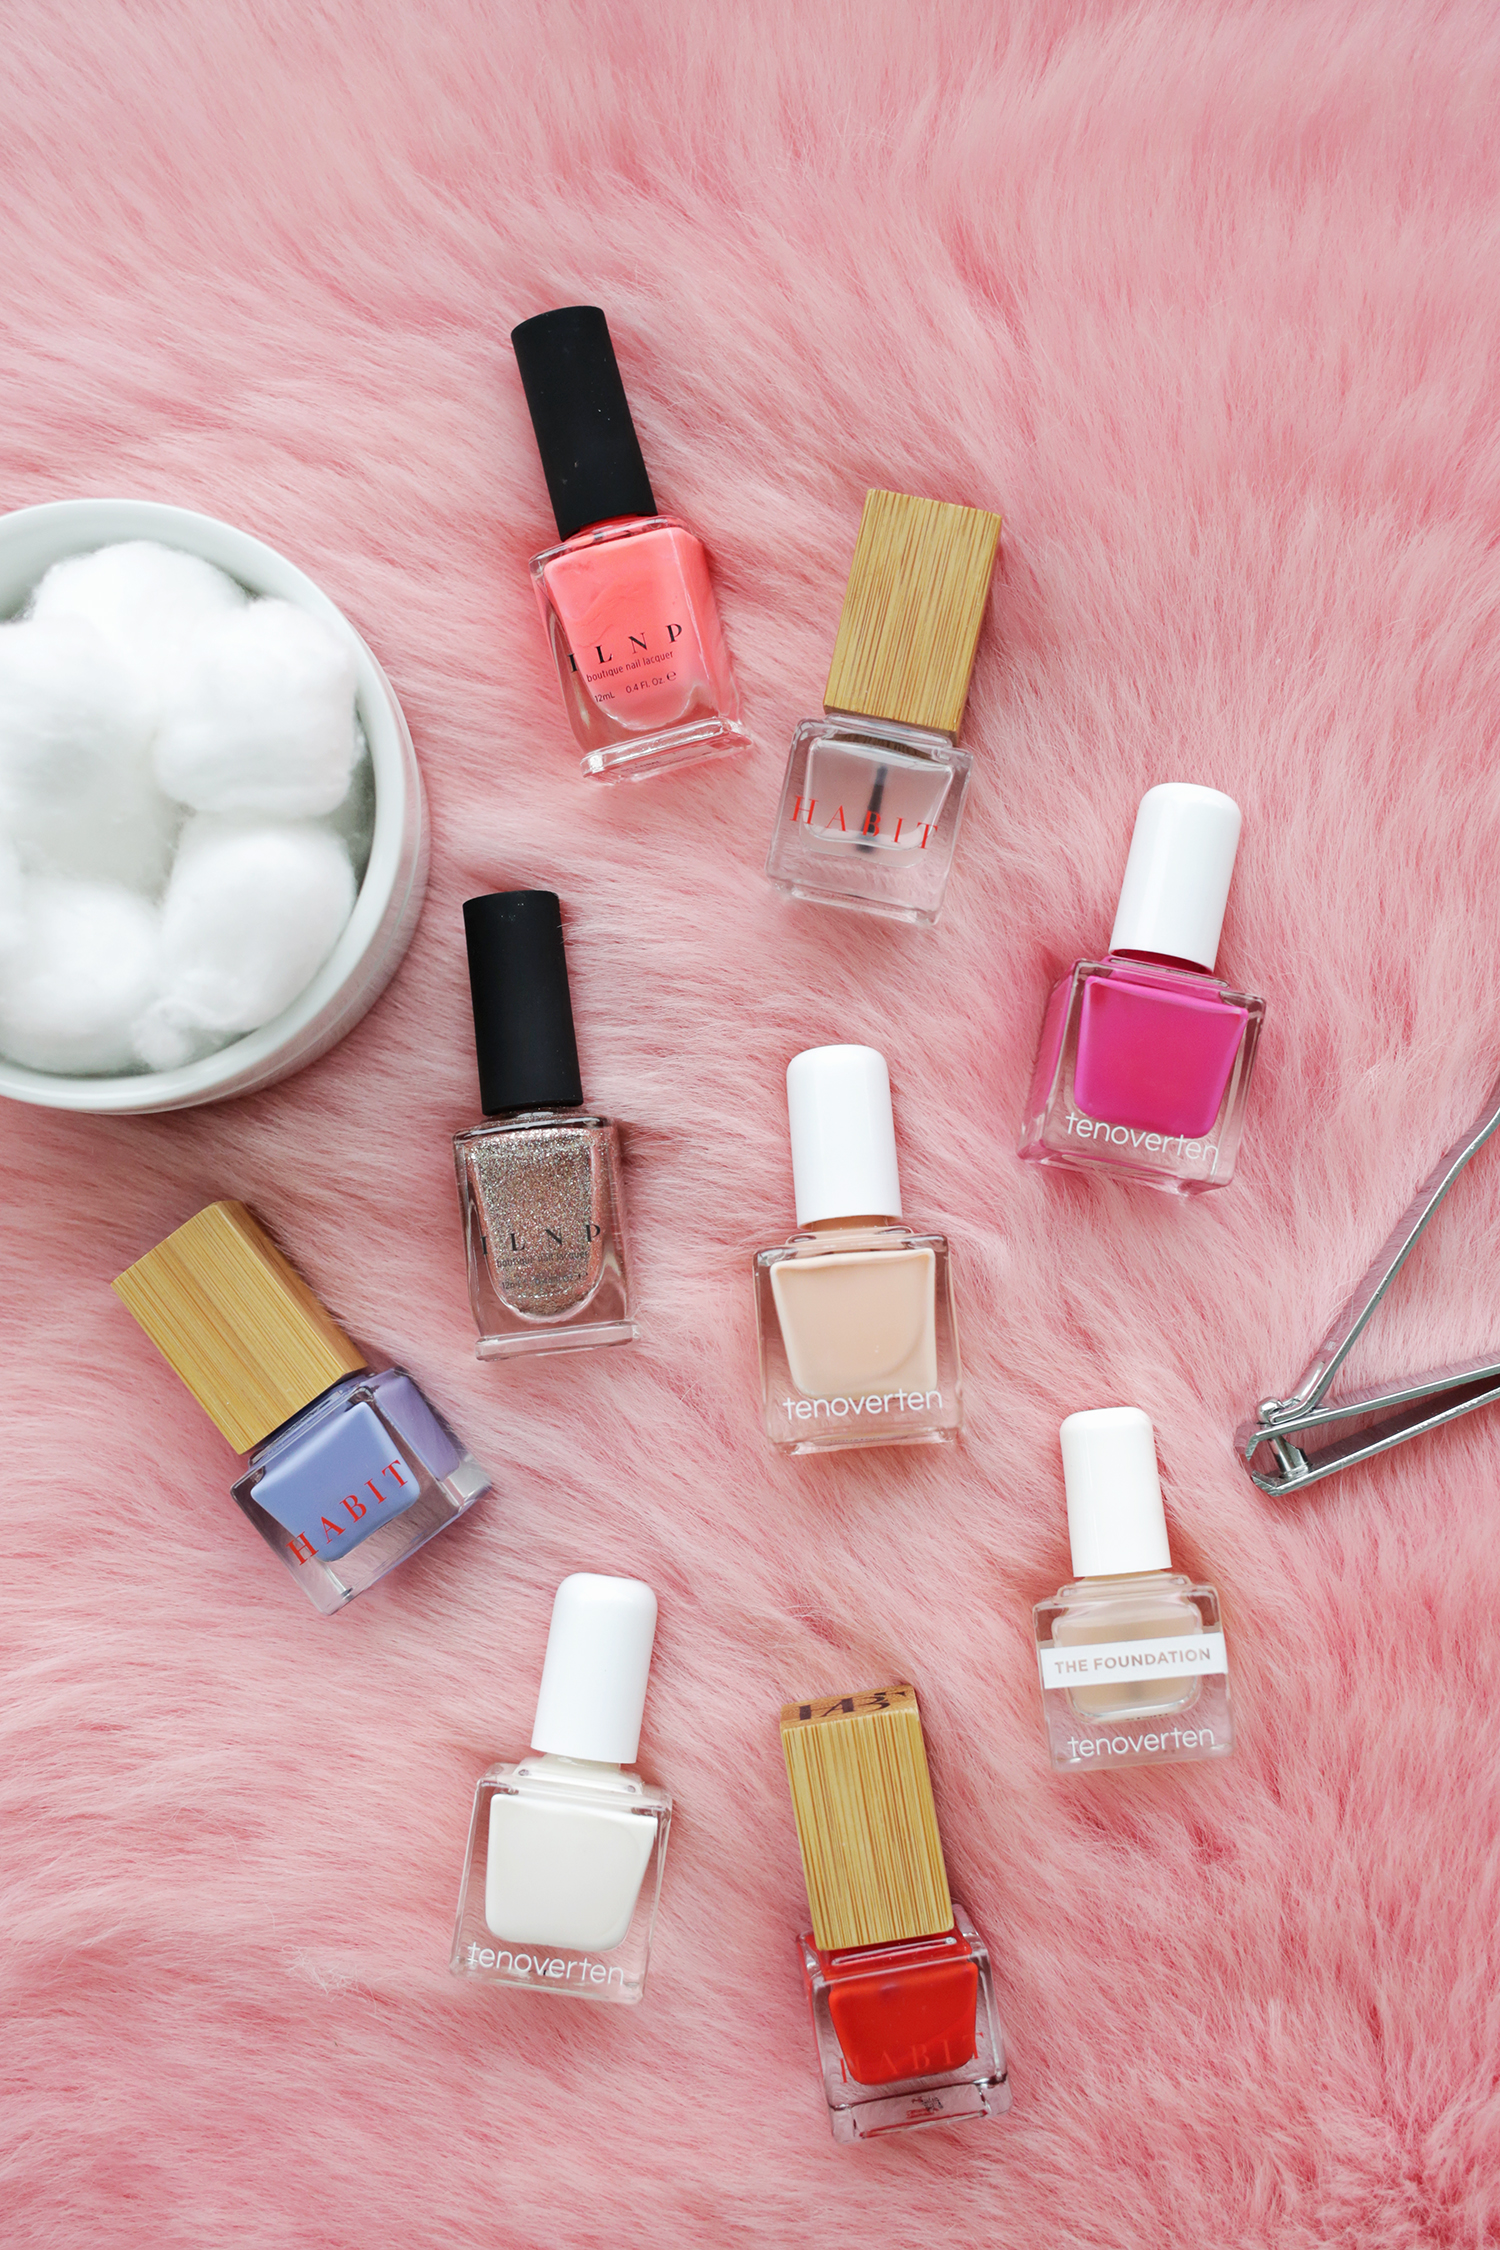 Natural nail polish 101 (click through for more!)